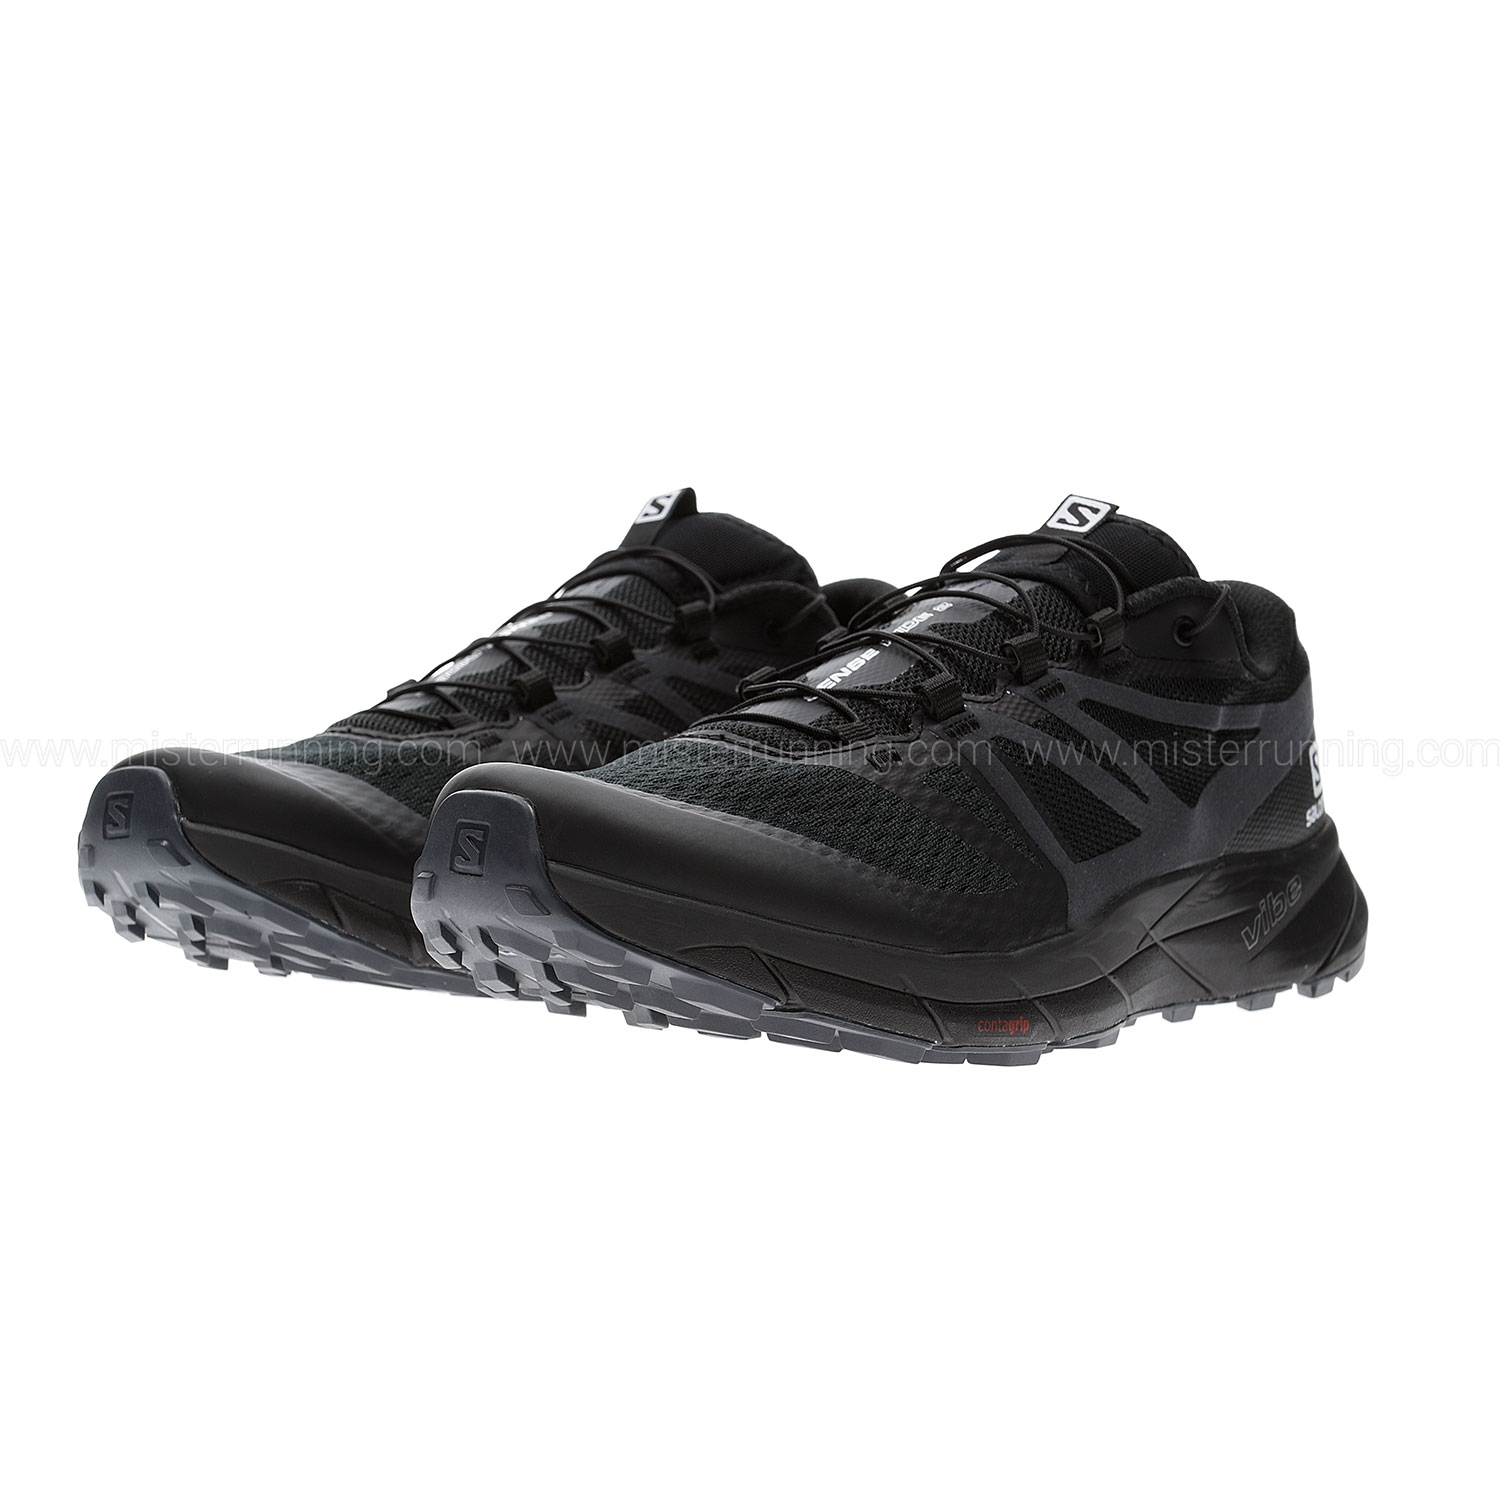 Salomon Sense Ride 2 - Black/Phantom/Ebony